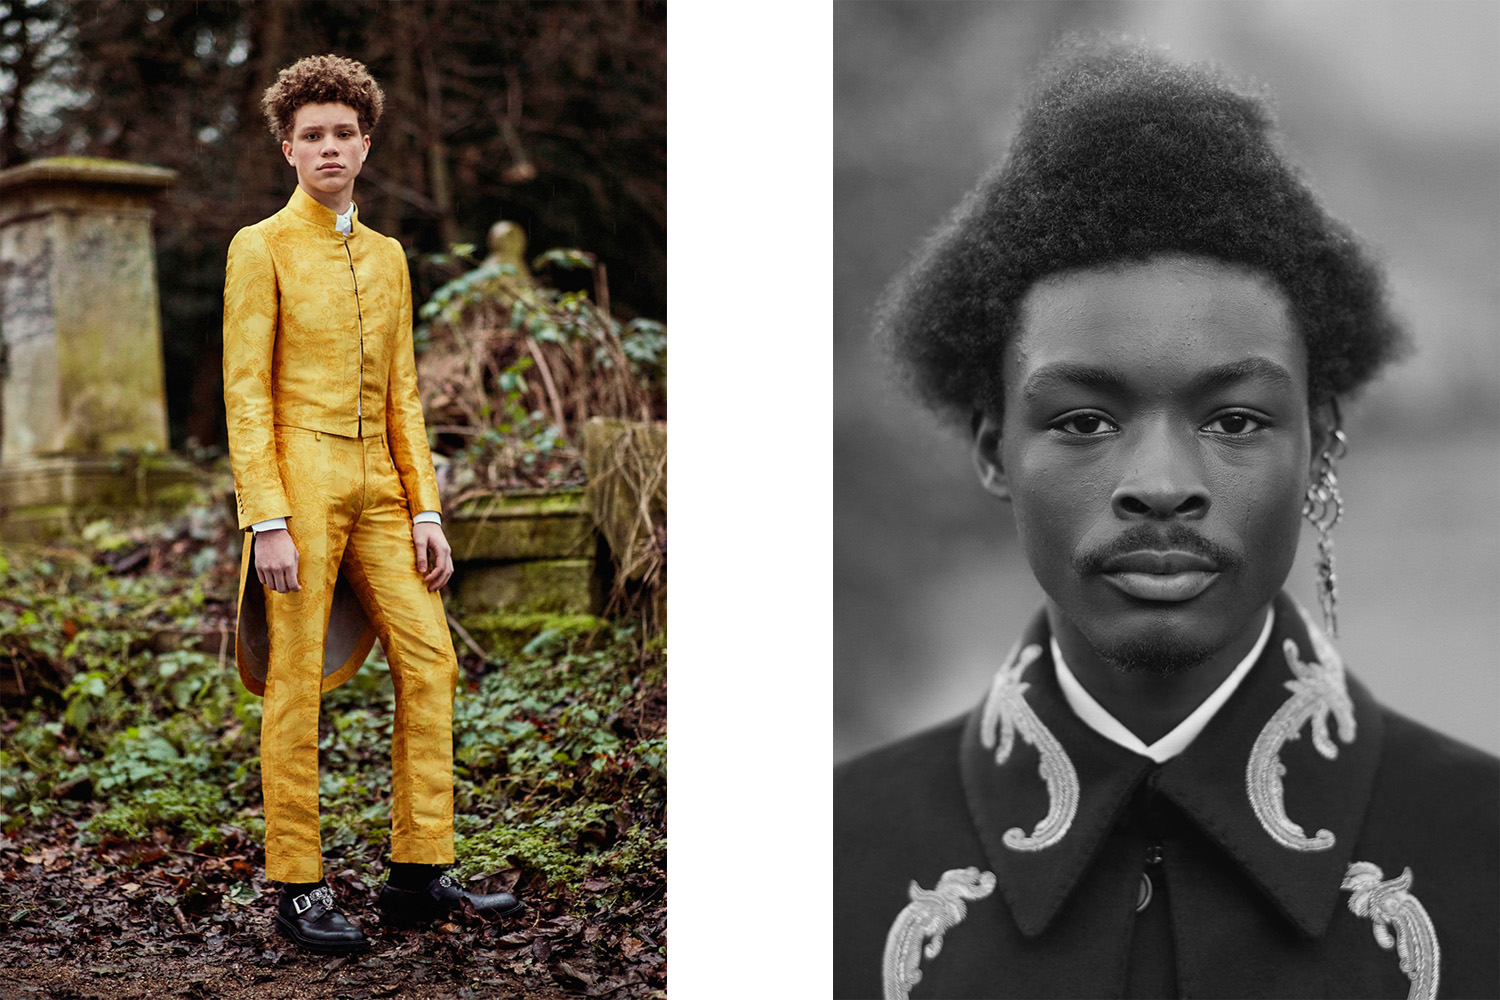 Images courtesy of Alexander McQueen